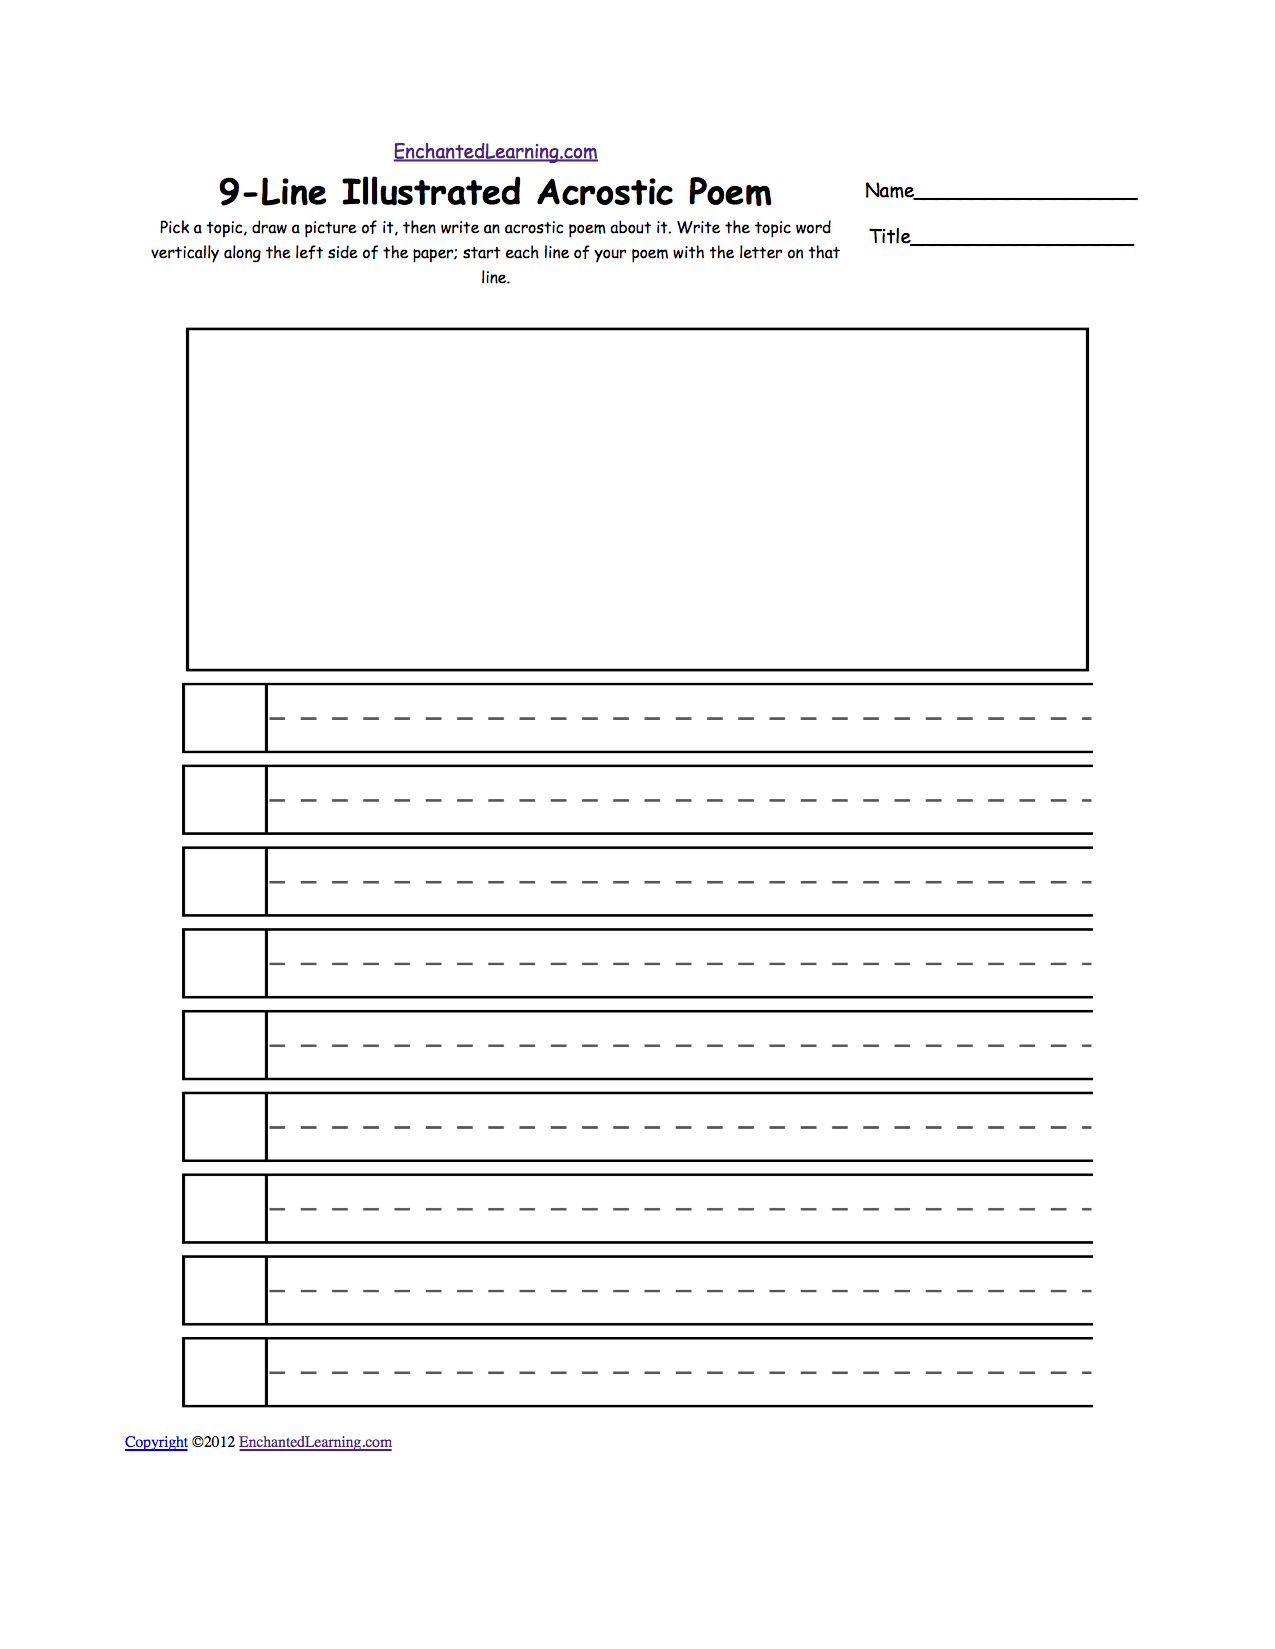 Blank Illustrated Acrostic Poem Worksheets Handwriting Lines